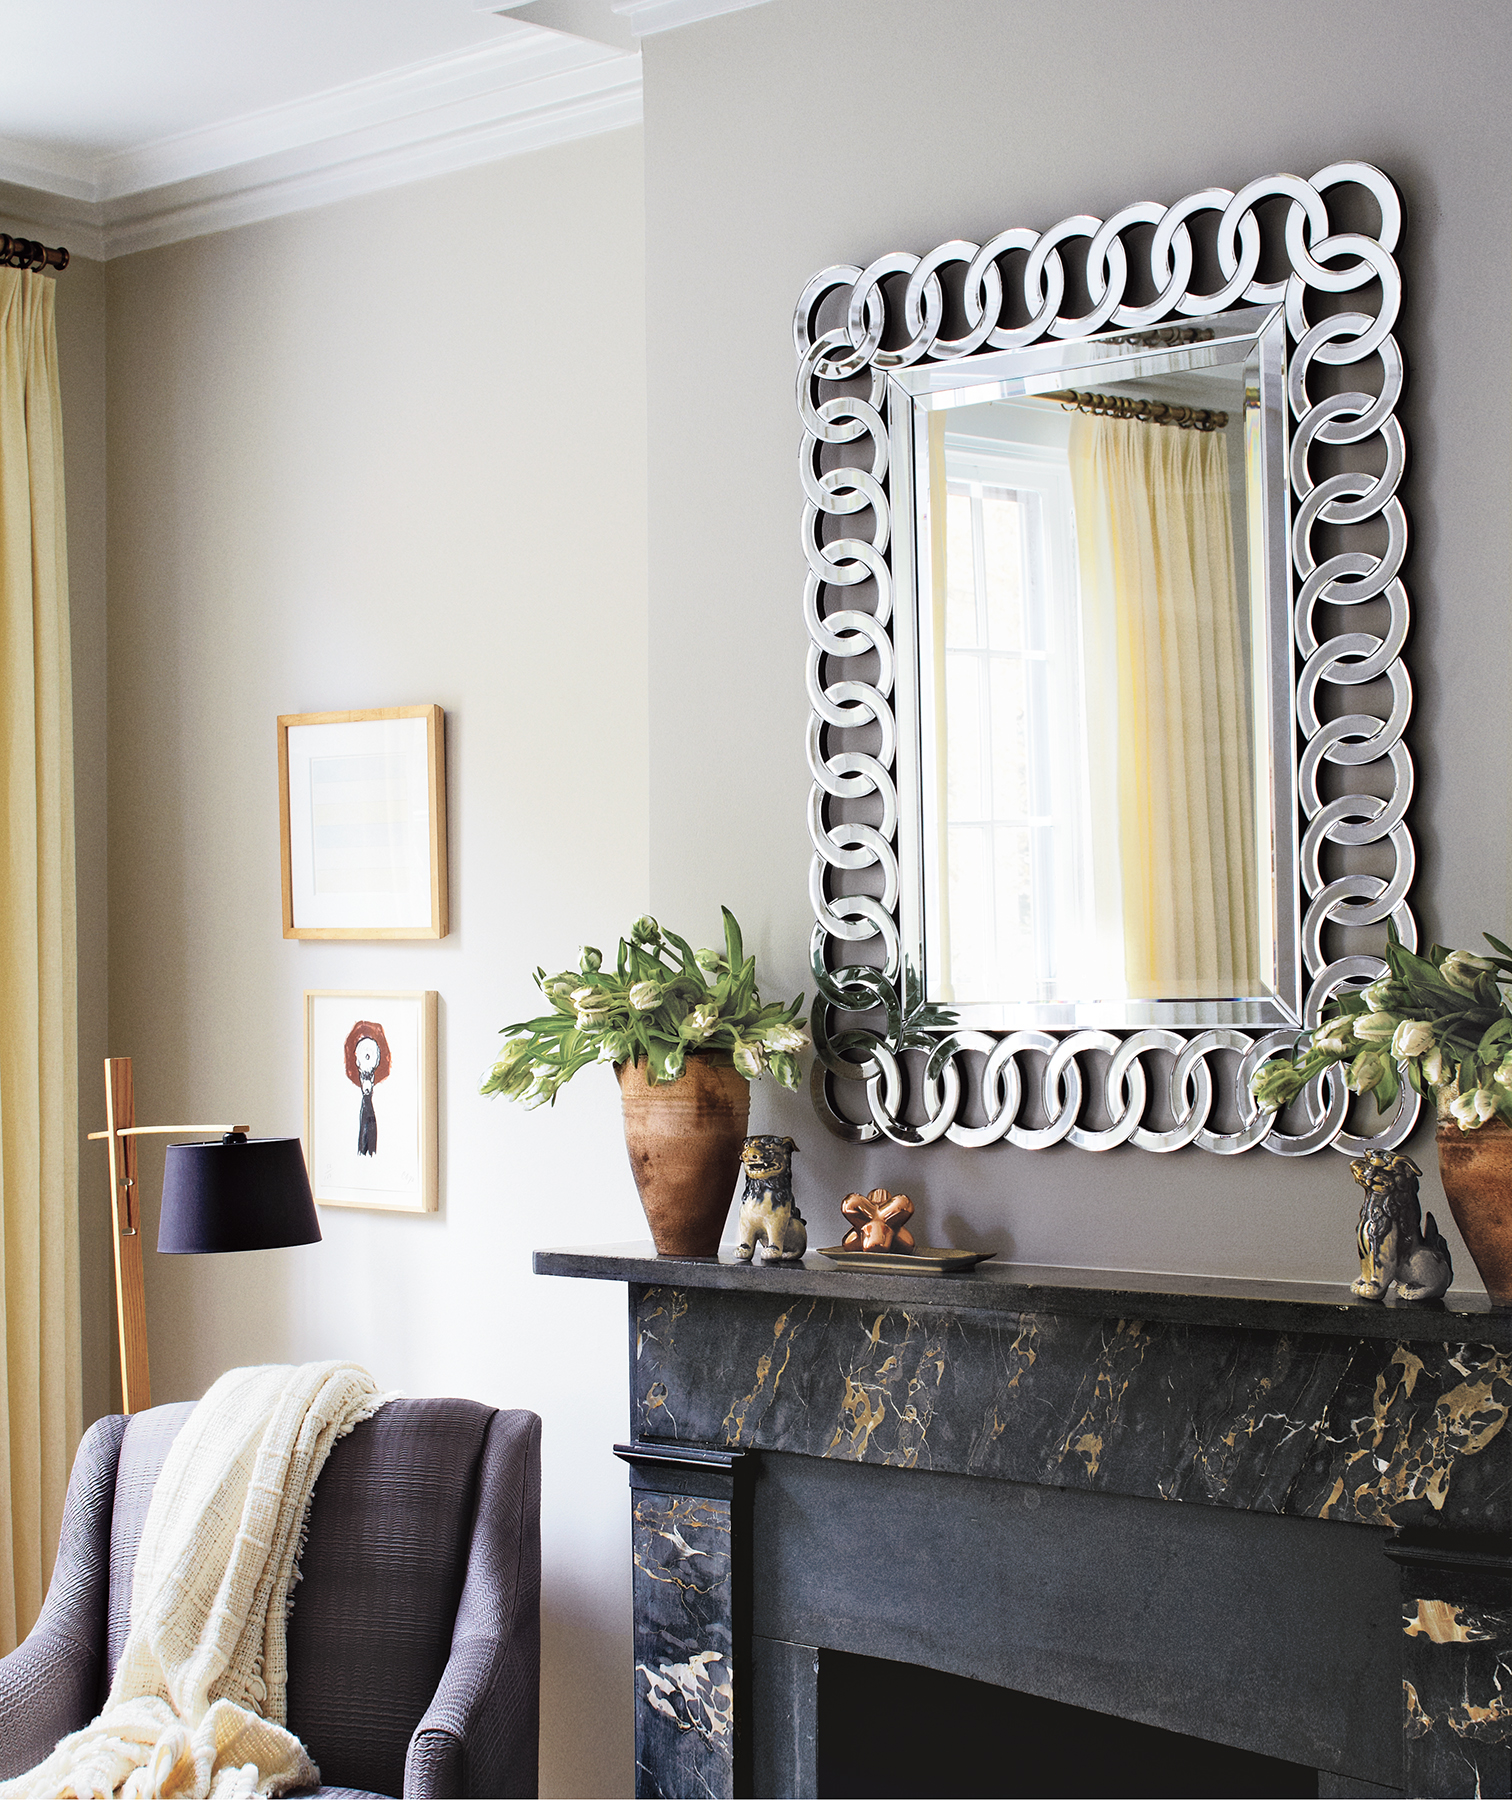 7 Expert Home Staging Tips You Can Do Yourself Real Simple Found On Easydoityourselfhomeimprovementscom